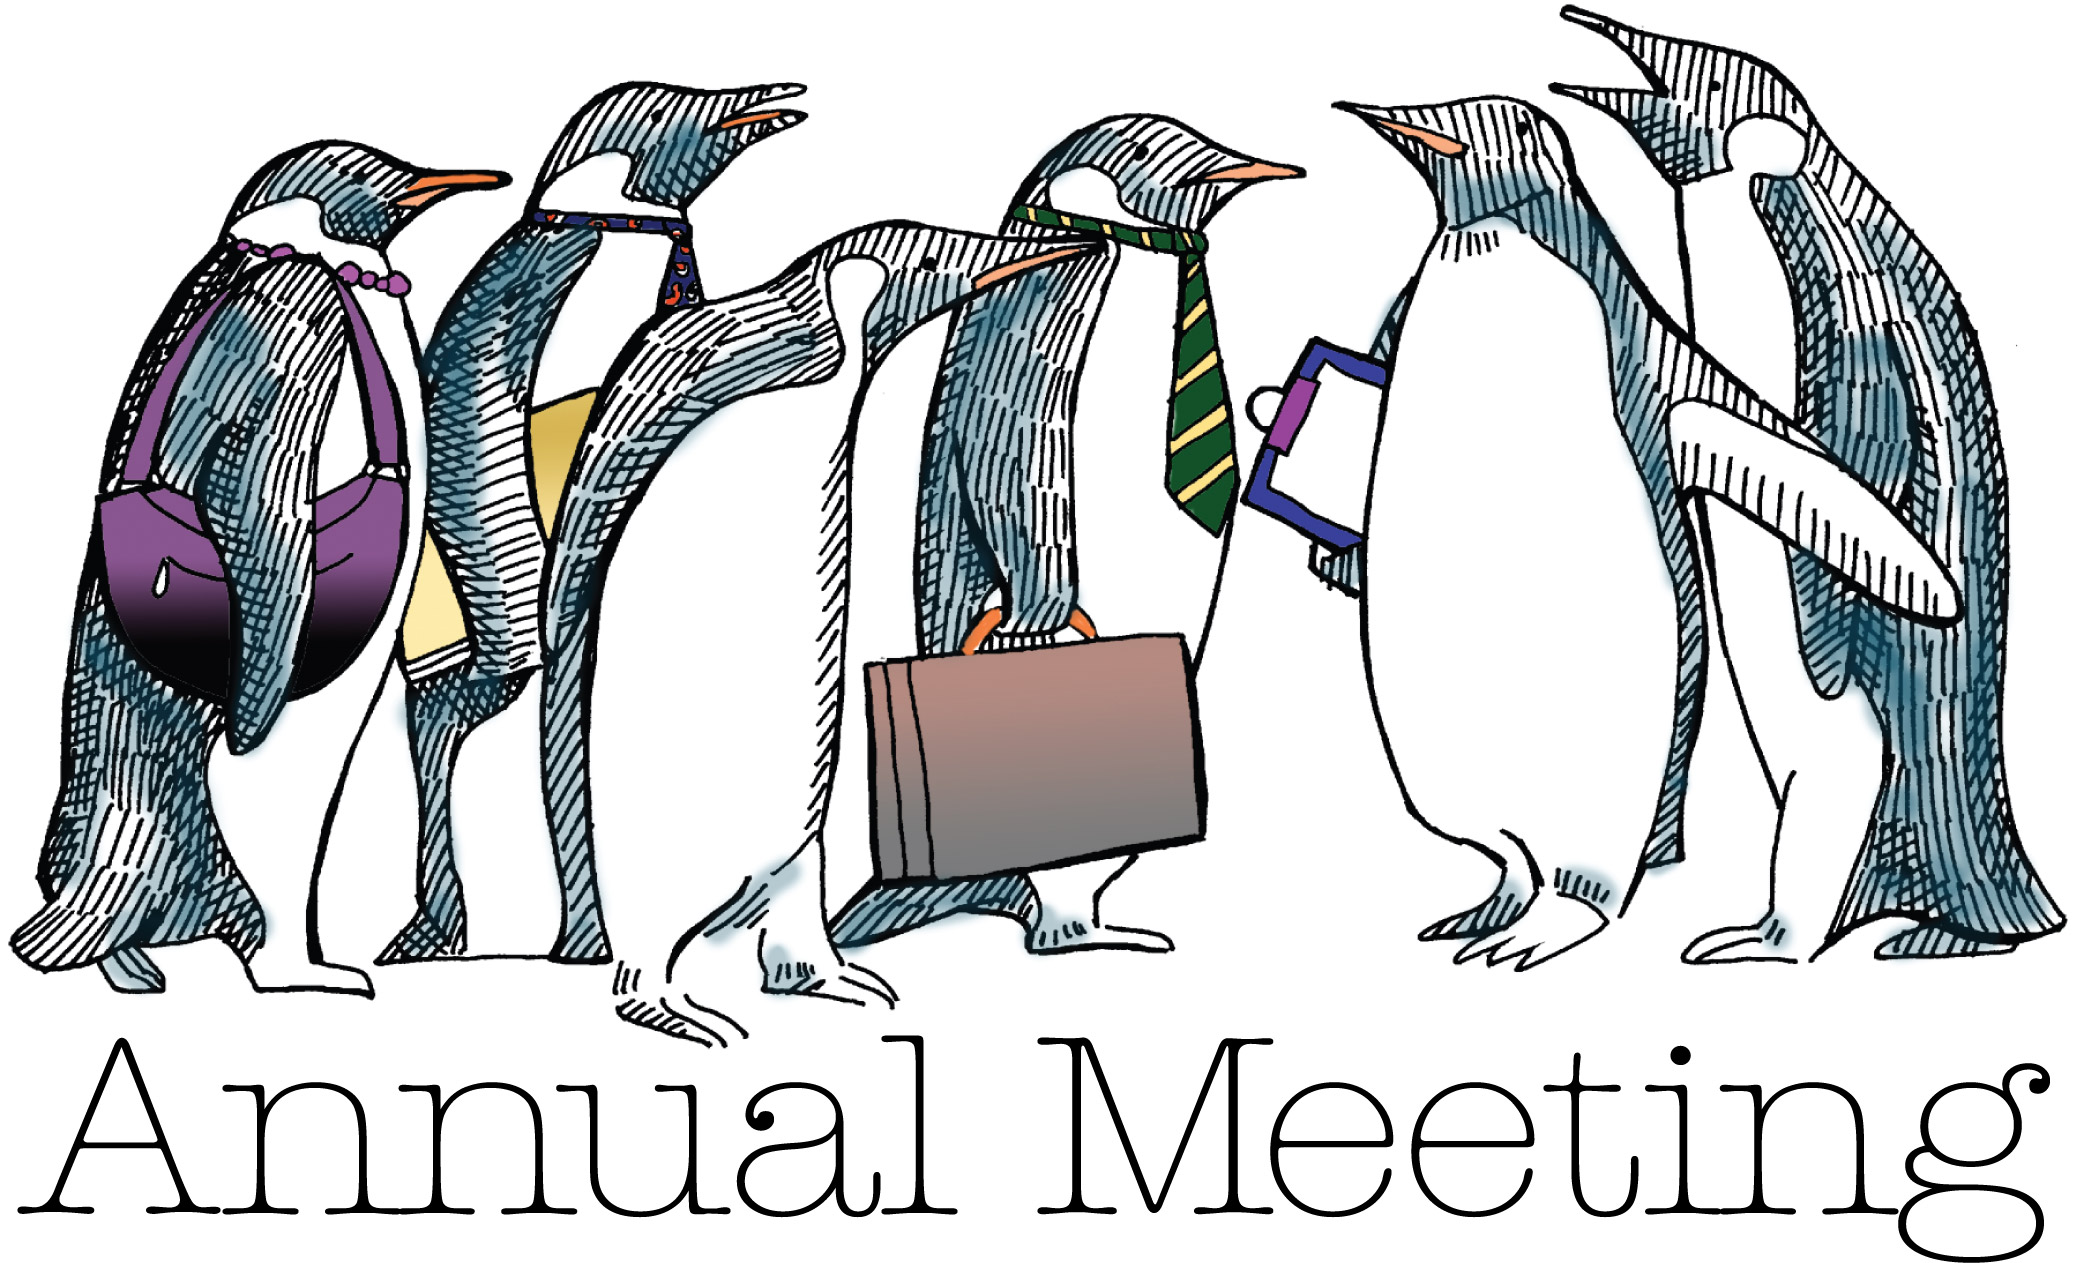 Annual Meeting Clipart.